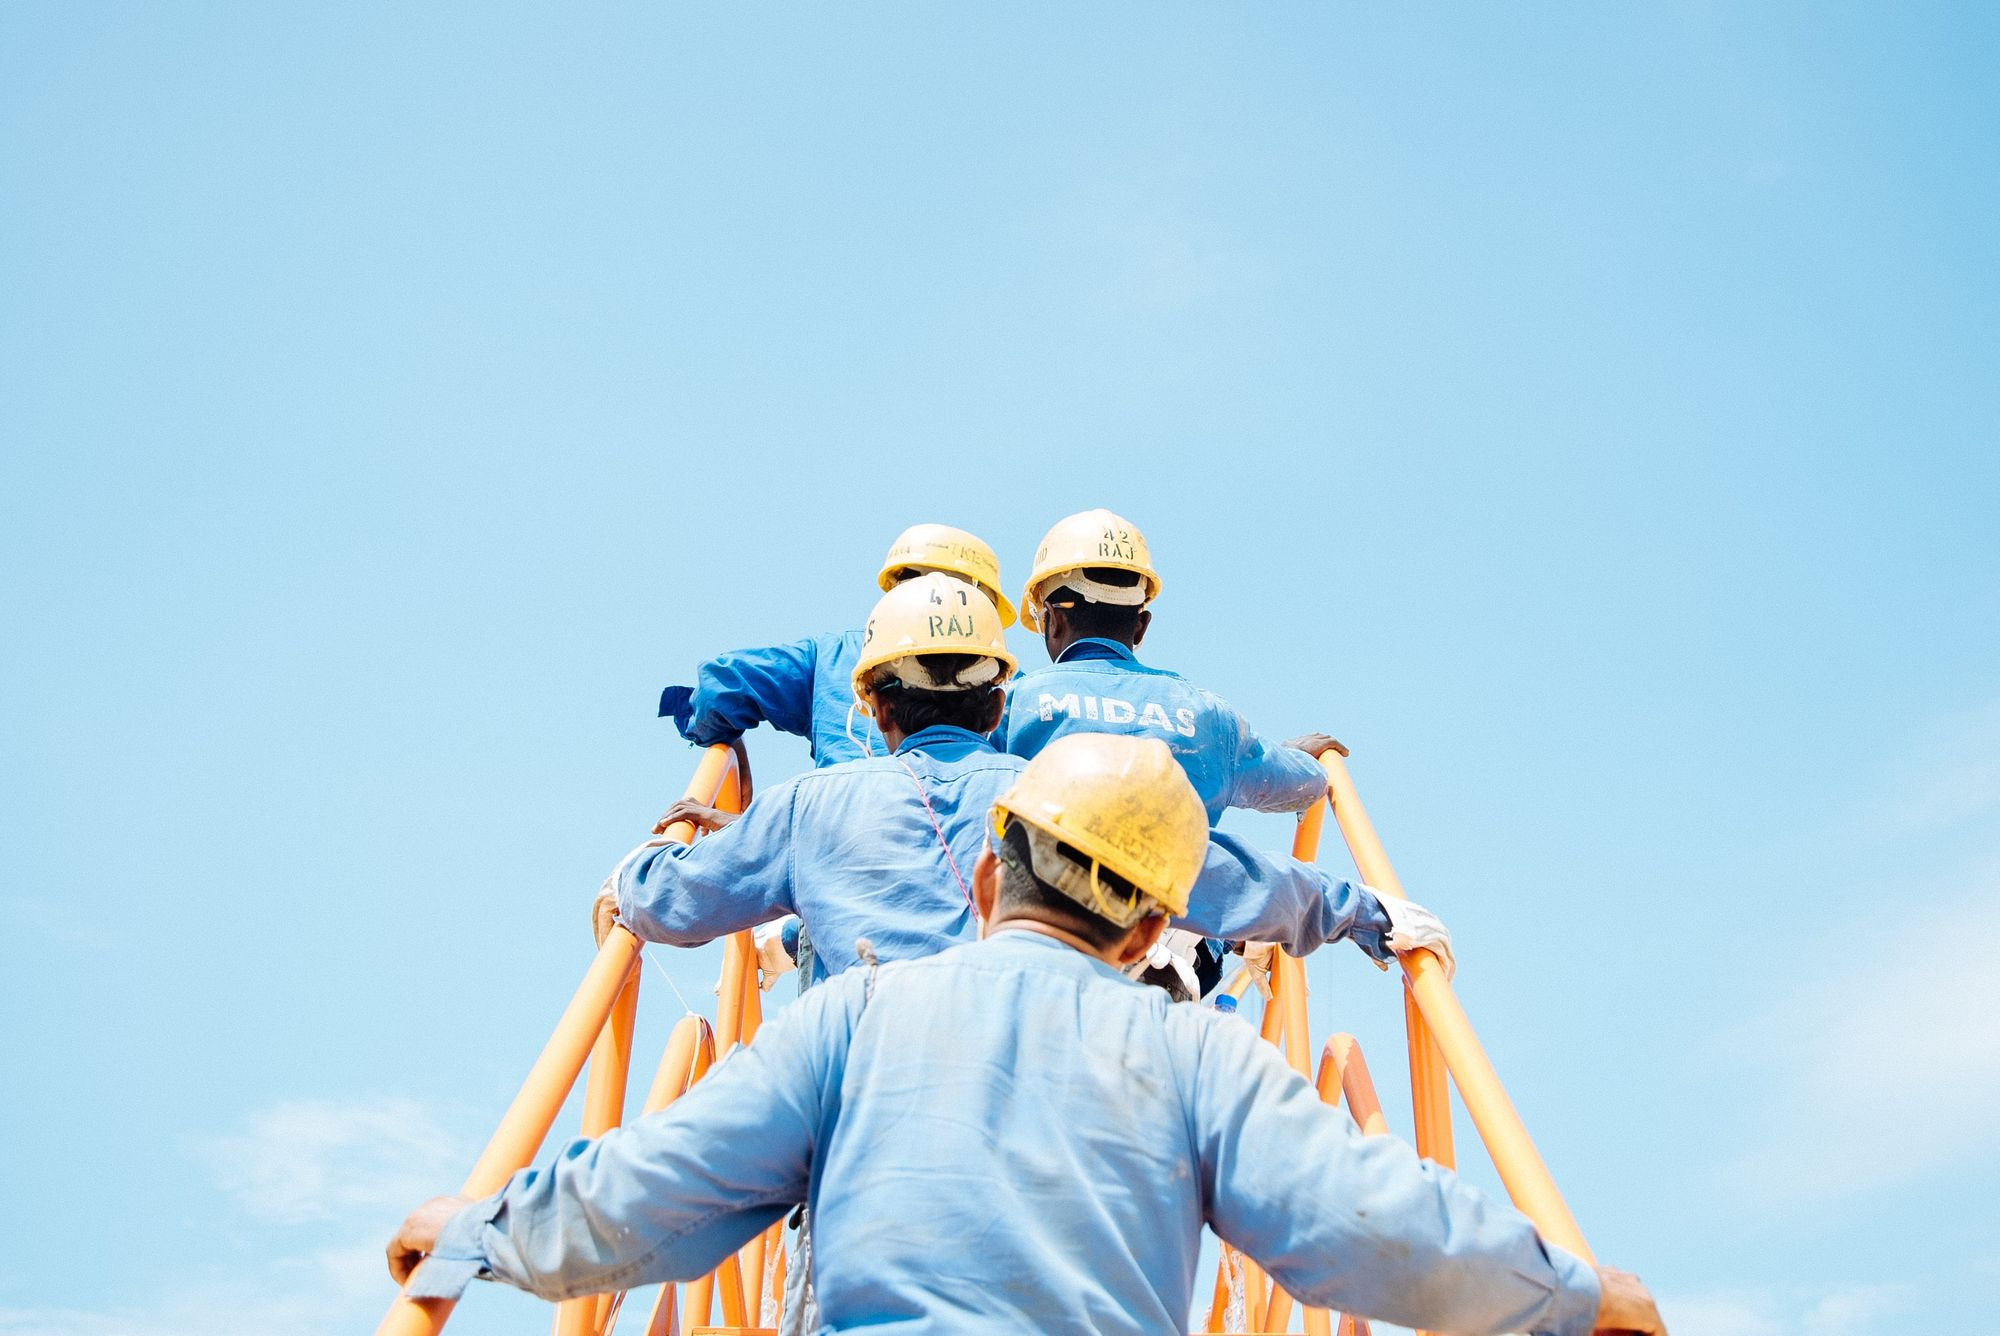 Four industrial workers in blue shirts and yellow hats climb up a yellow staircase